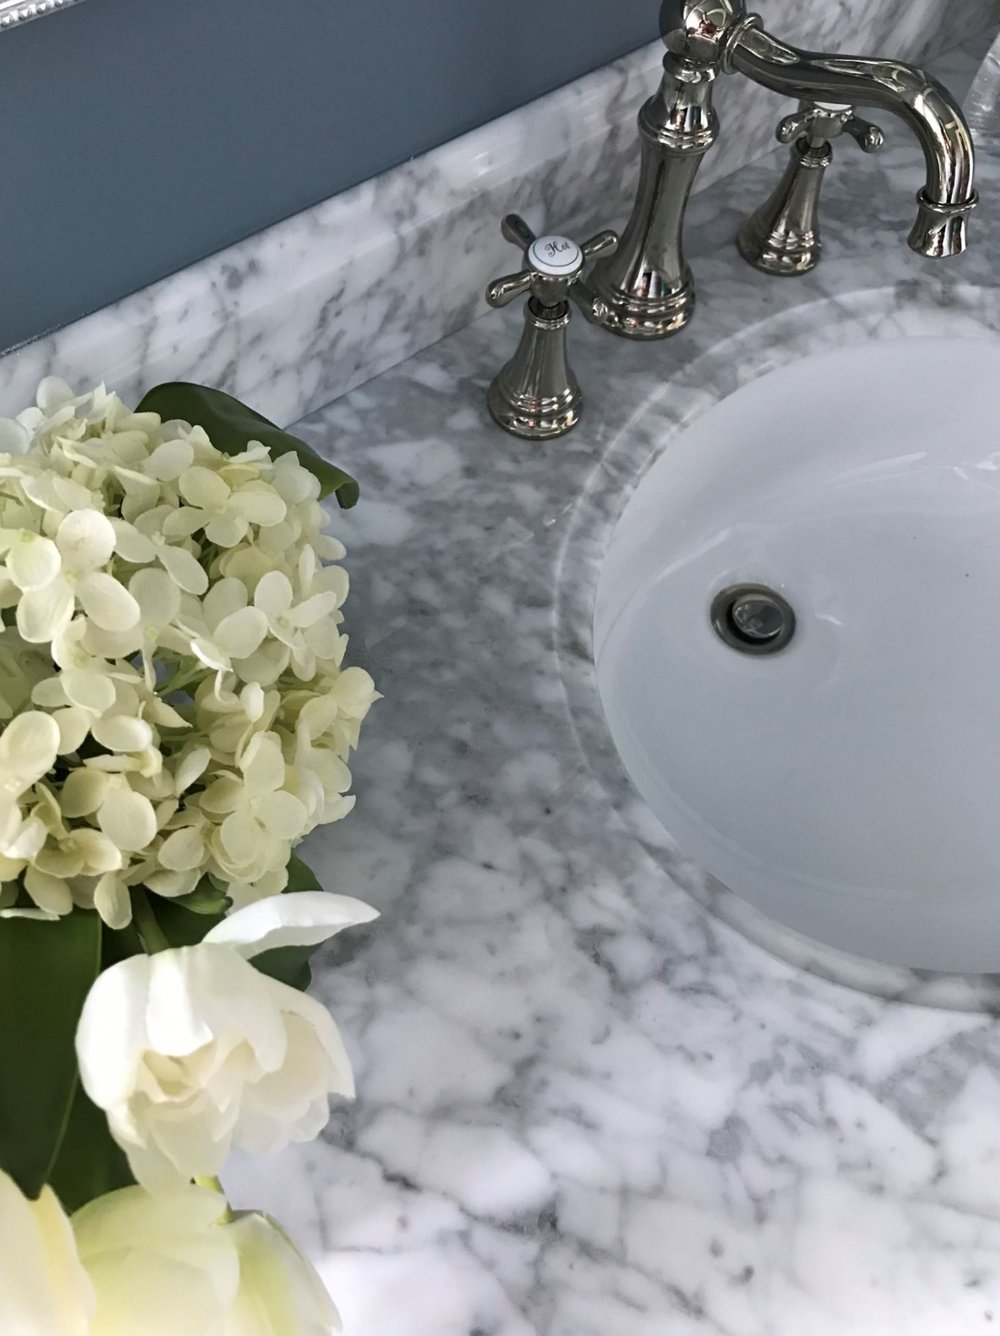 8 marble faucet hydrangea design jimmy nash.JPG